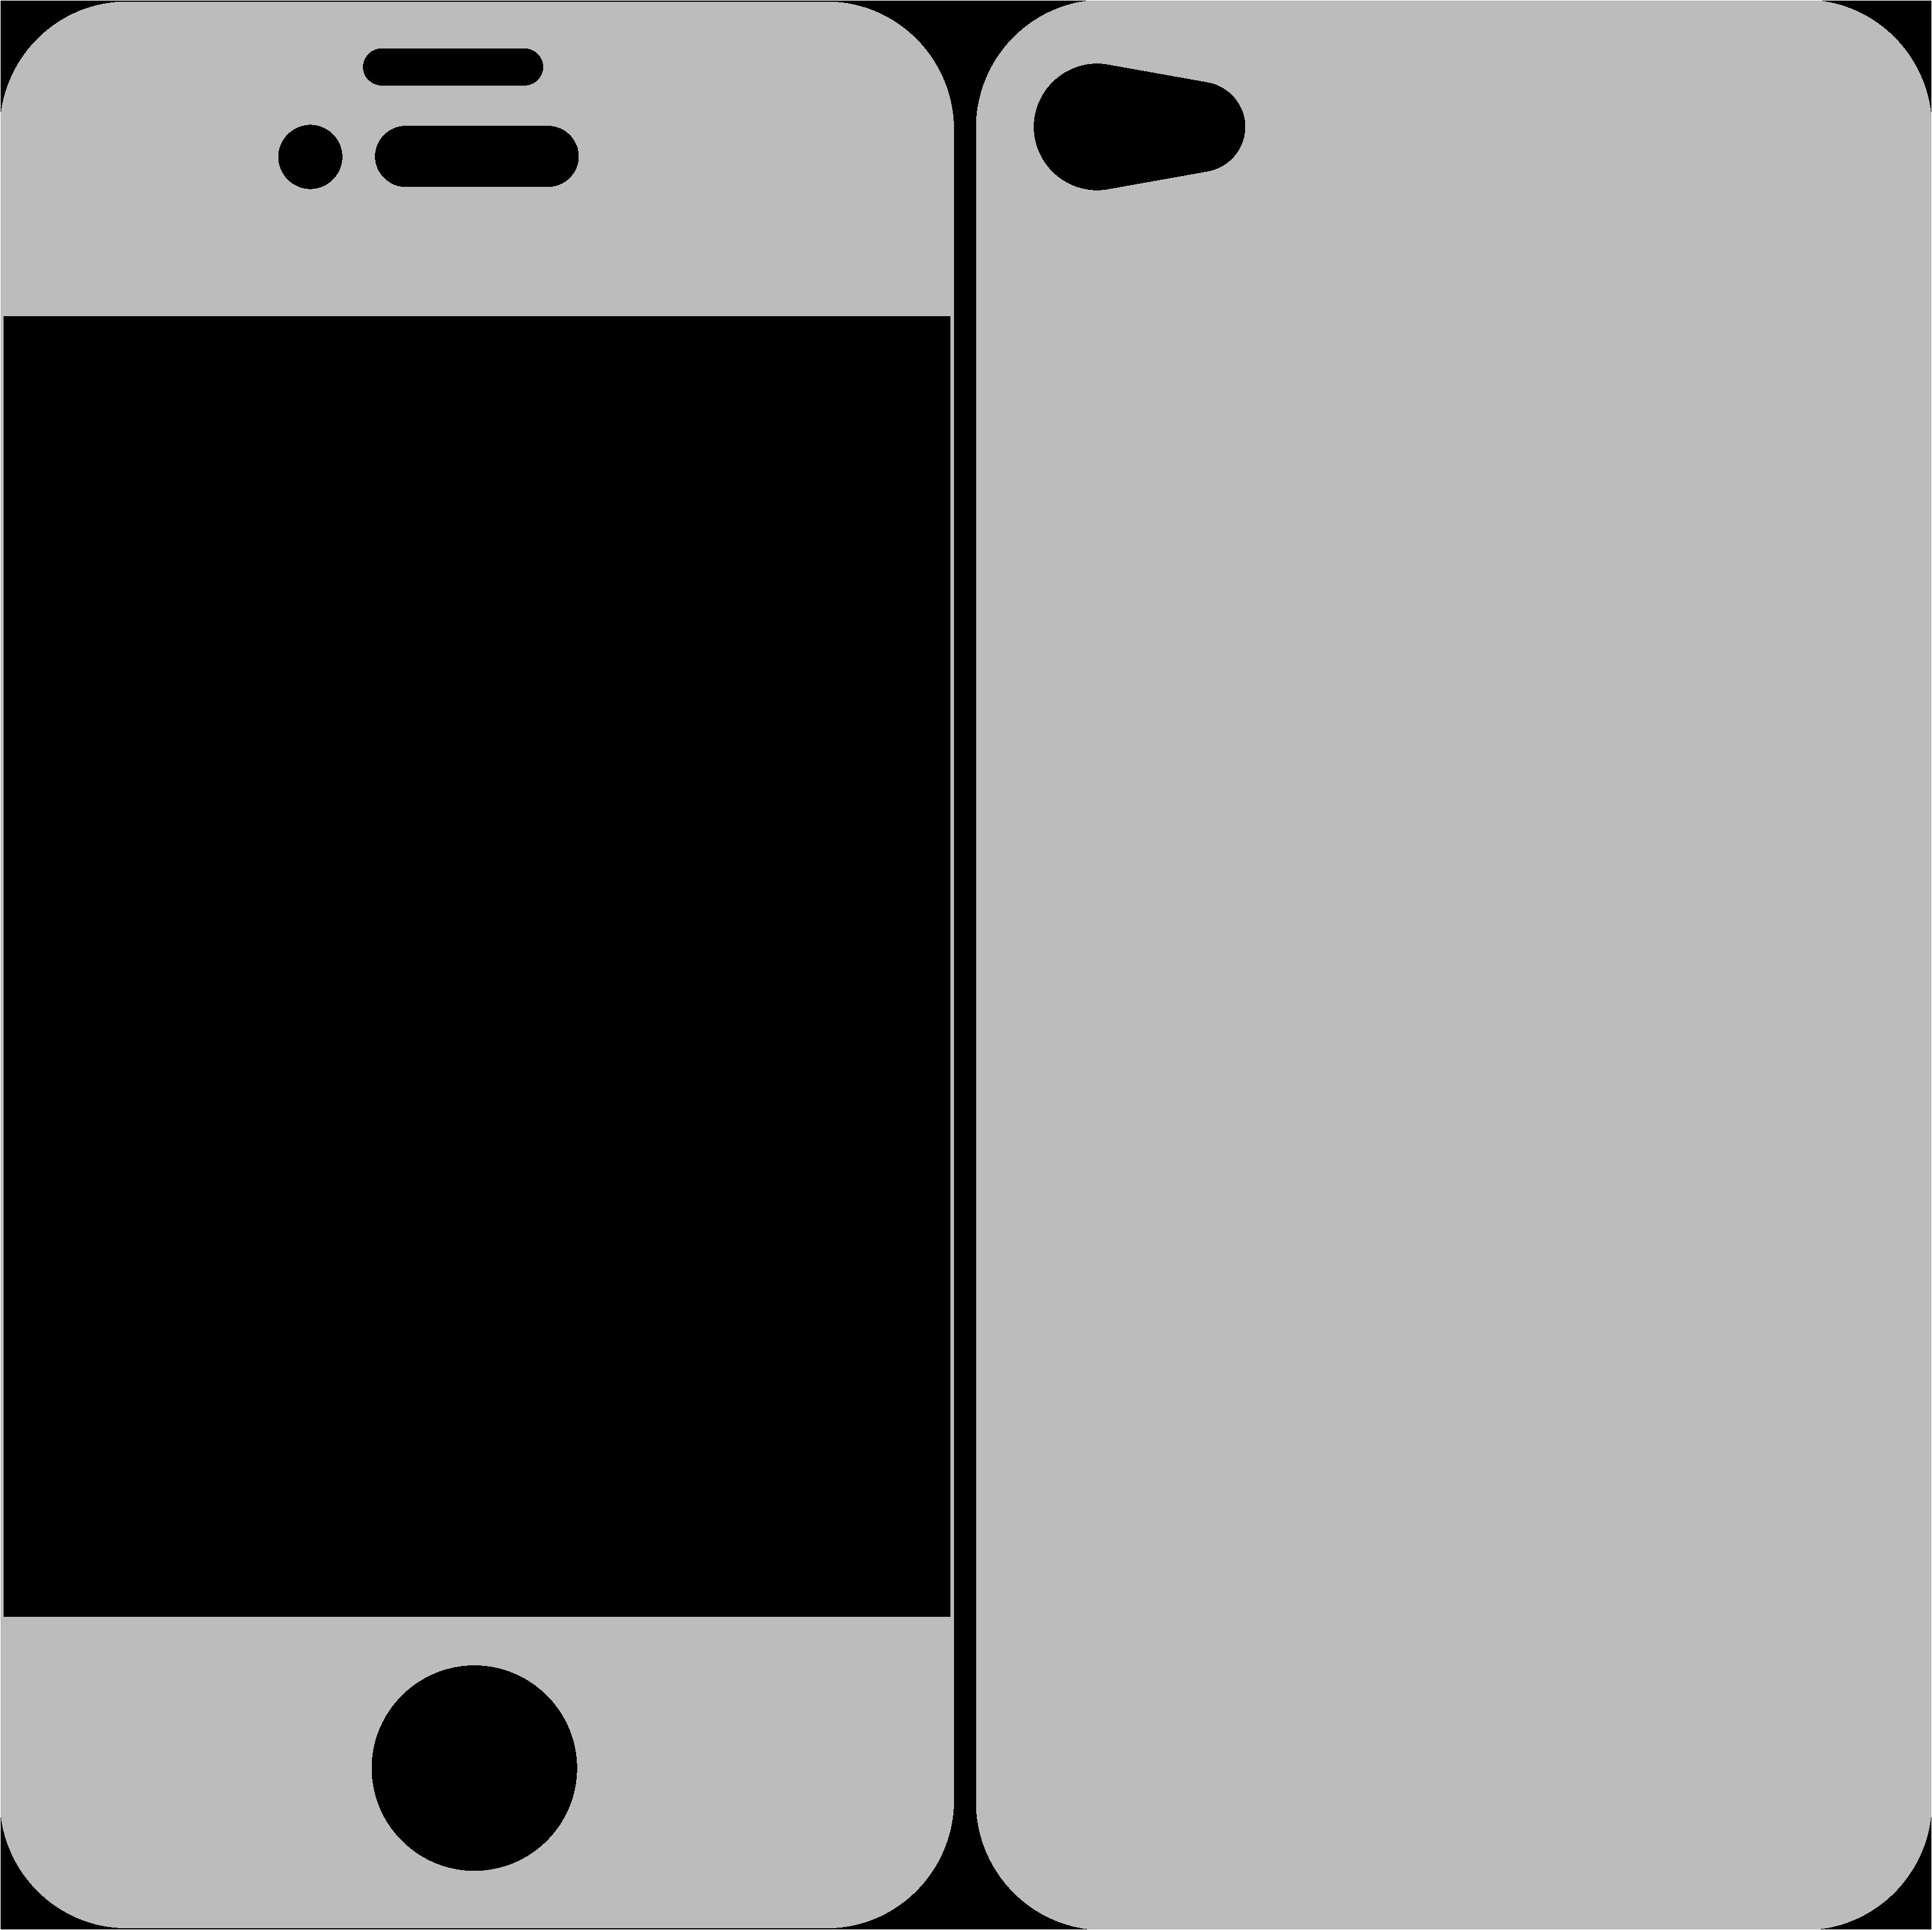 iPhone 5 Cover Template Best Photos Of iPhone 4 Template iPhone 4 Case Template